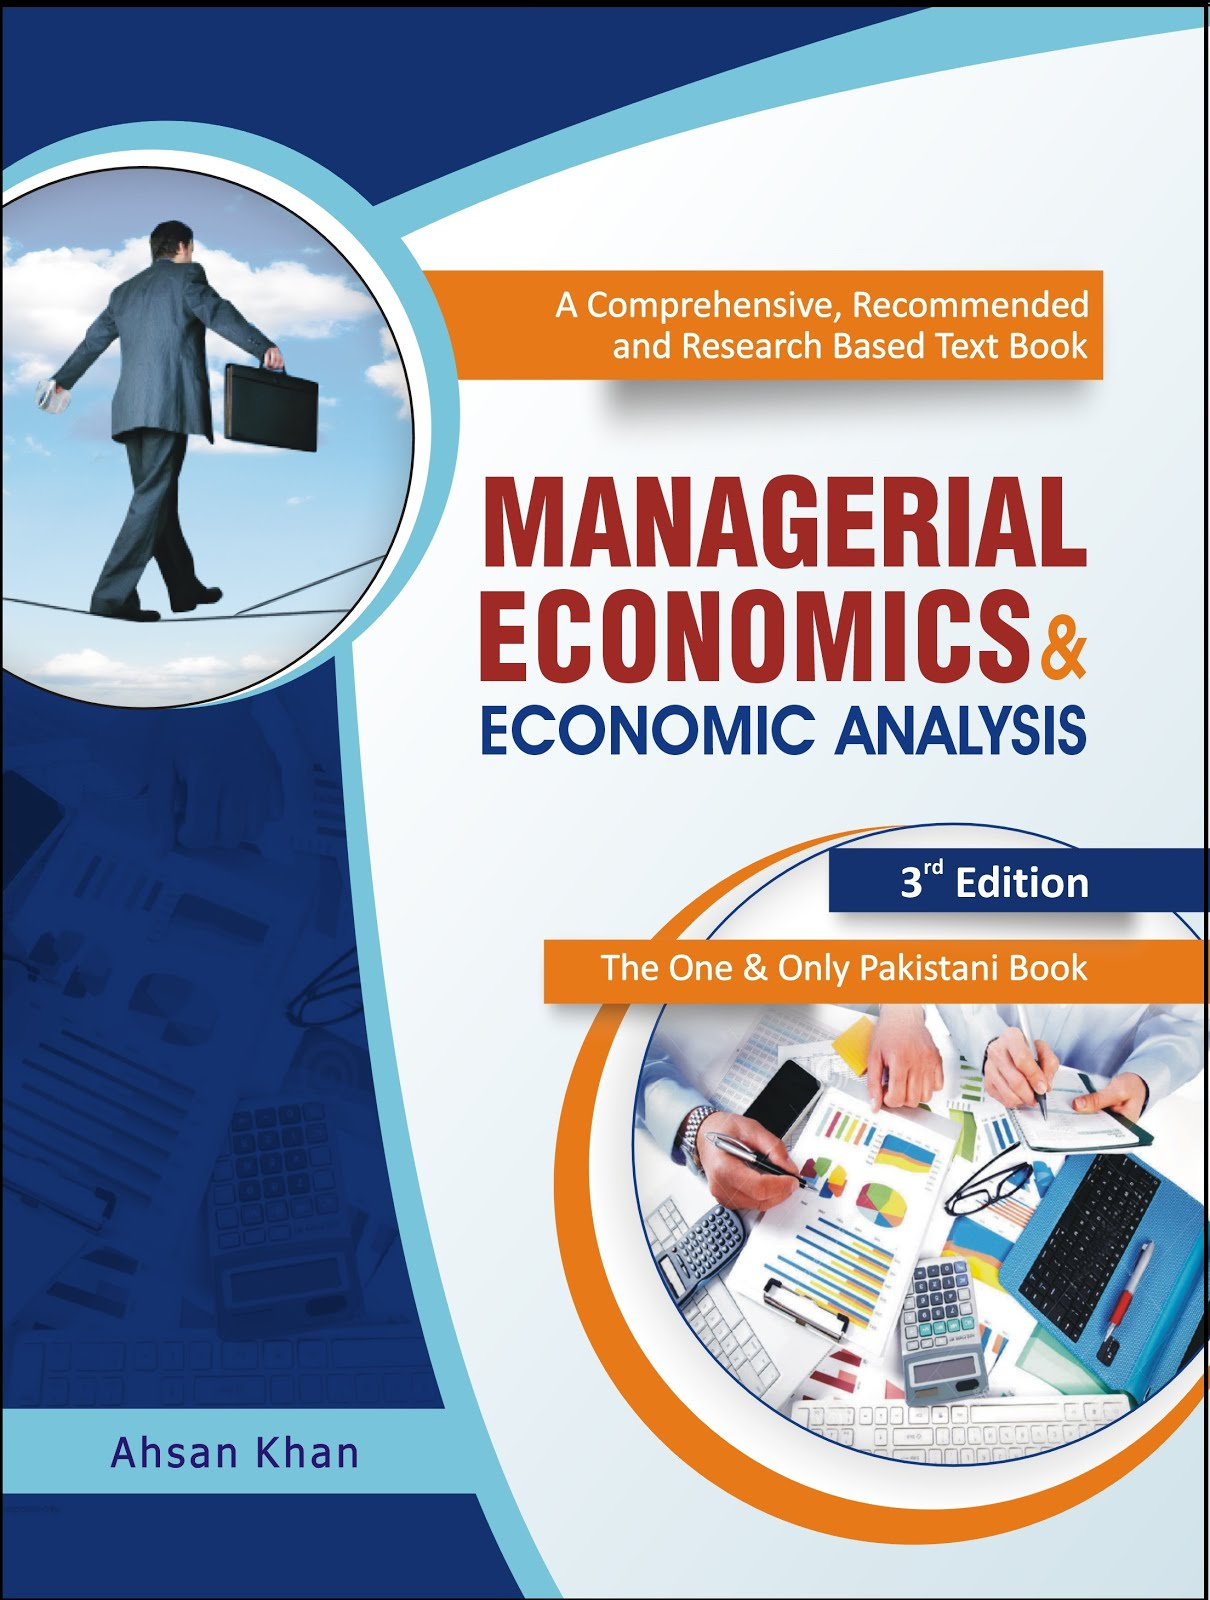 managerial economic and business analysis It is a branch of economics that deals with the application of microeconomic analysis to decision-making techniques of in managerial economics, managerial issues are resolved basis of business policies: managerial economics is the founding.